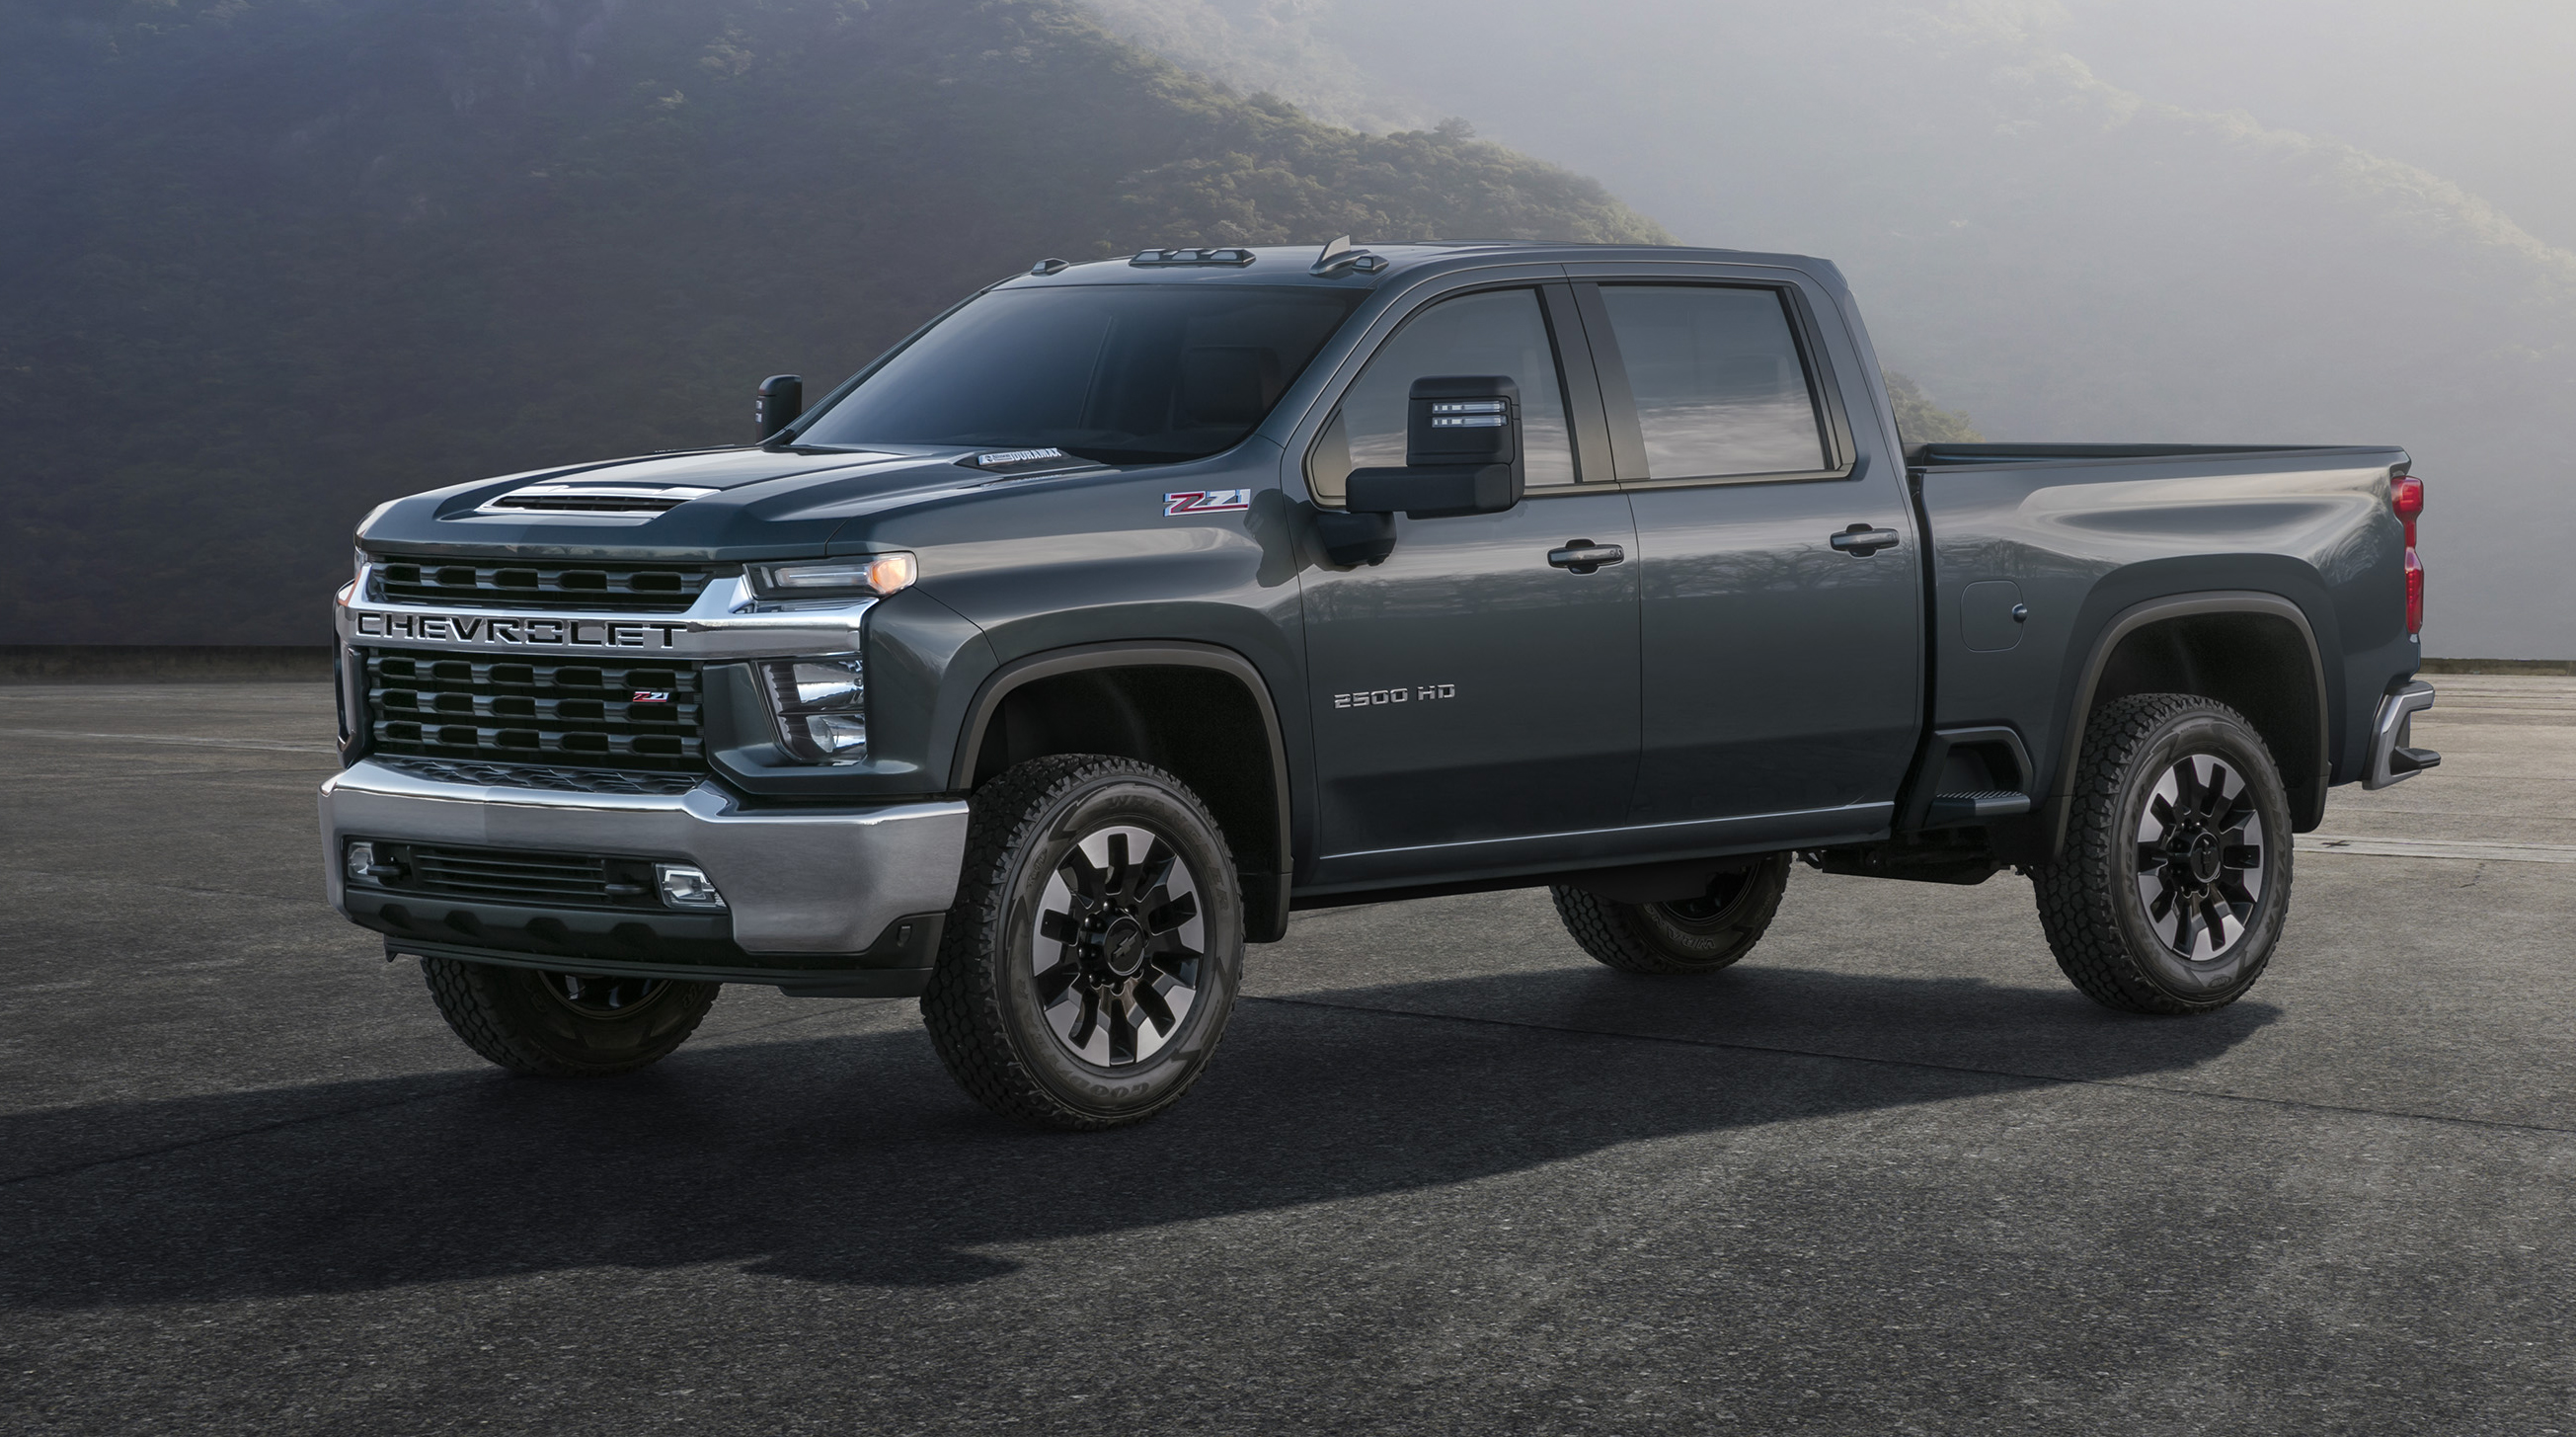 83 The Best Chevrolet Truck 2020 Price And Release Date